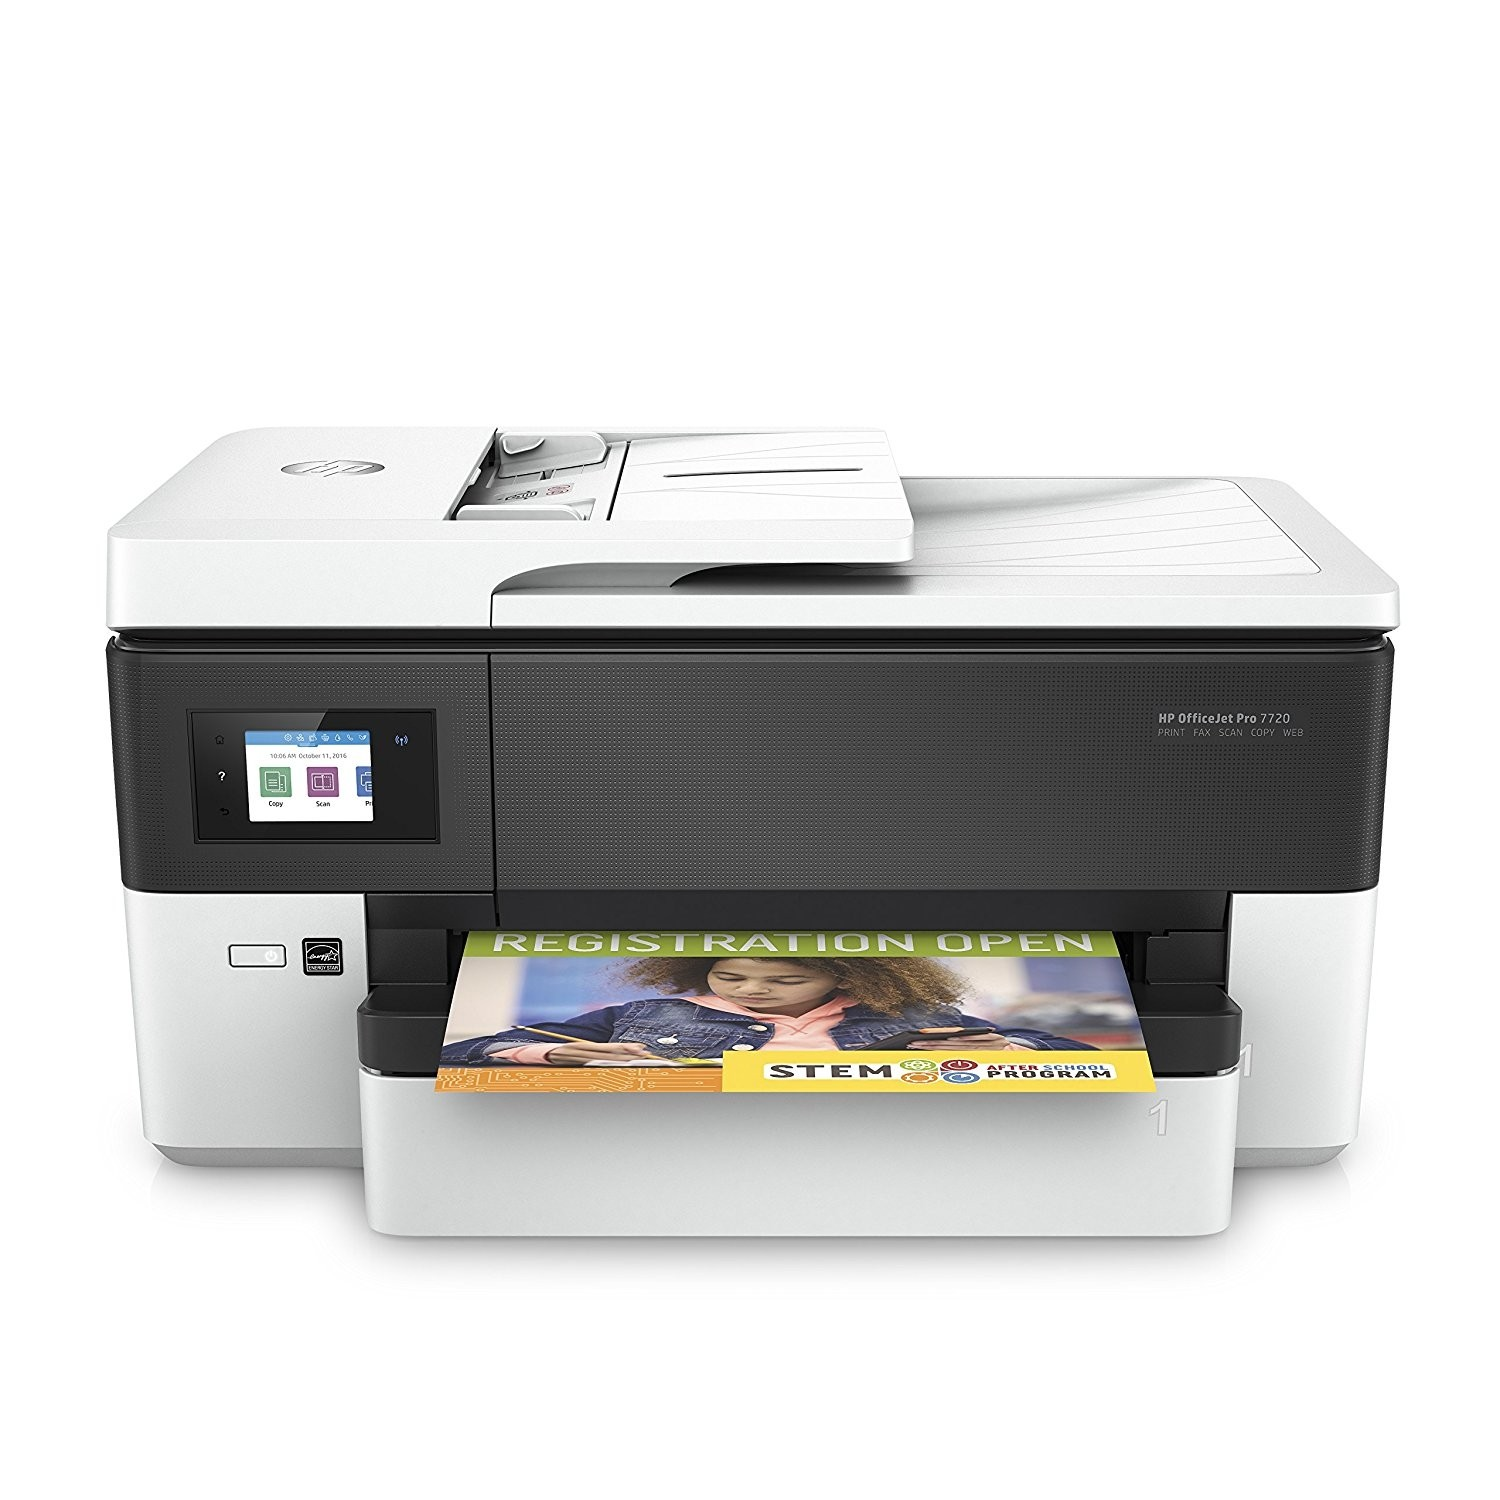 hp officejet pro 7720 a3 all in one multifunktionsdrucker. Black Bedroom Furniture Sets. Home Design Ideas